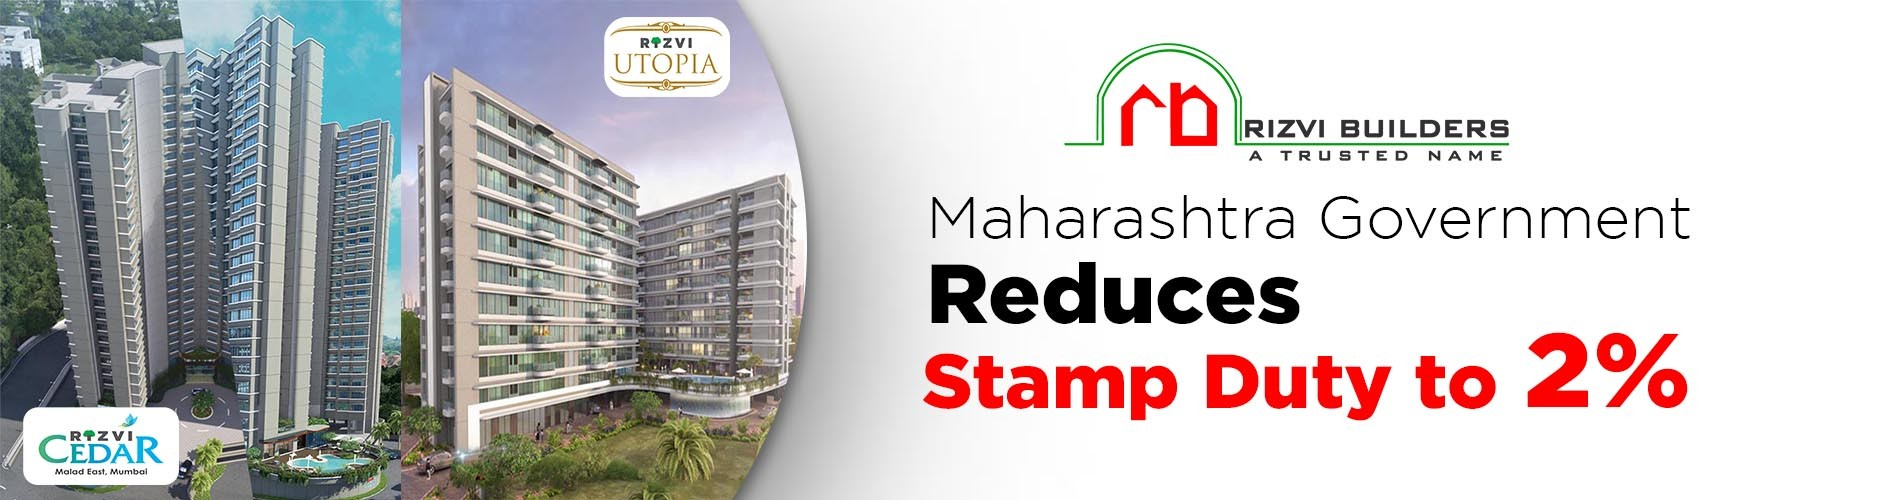 Maharashtra Government reduces Stamp Duty to 2%